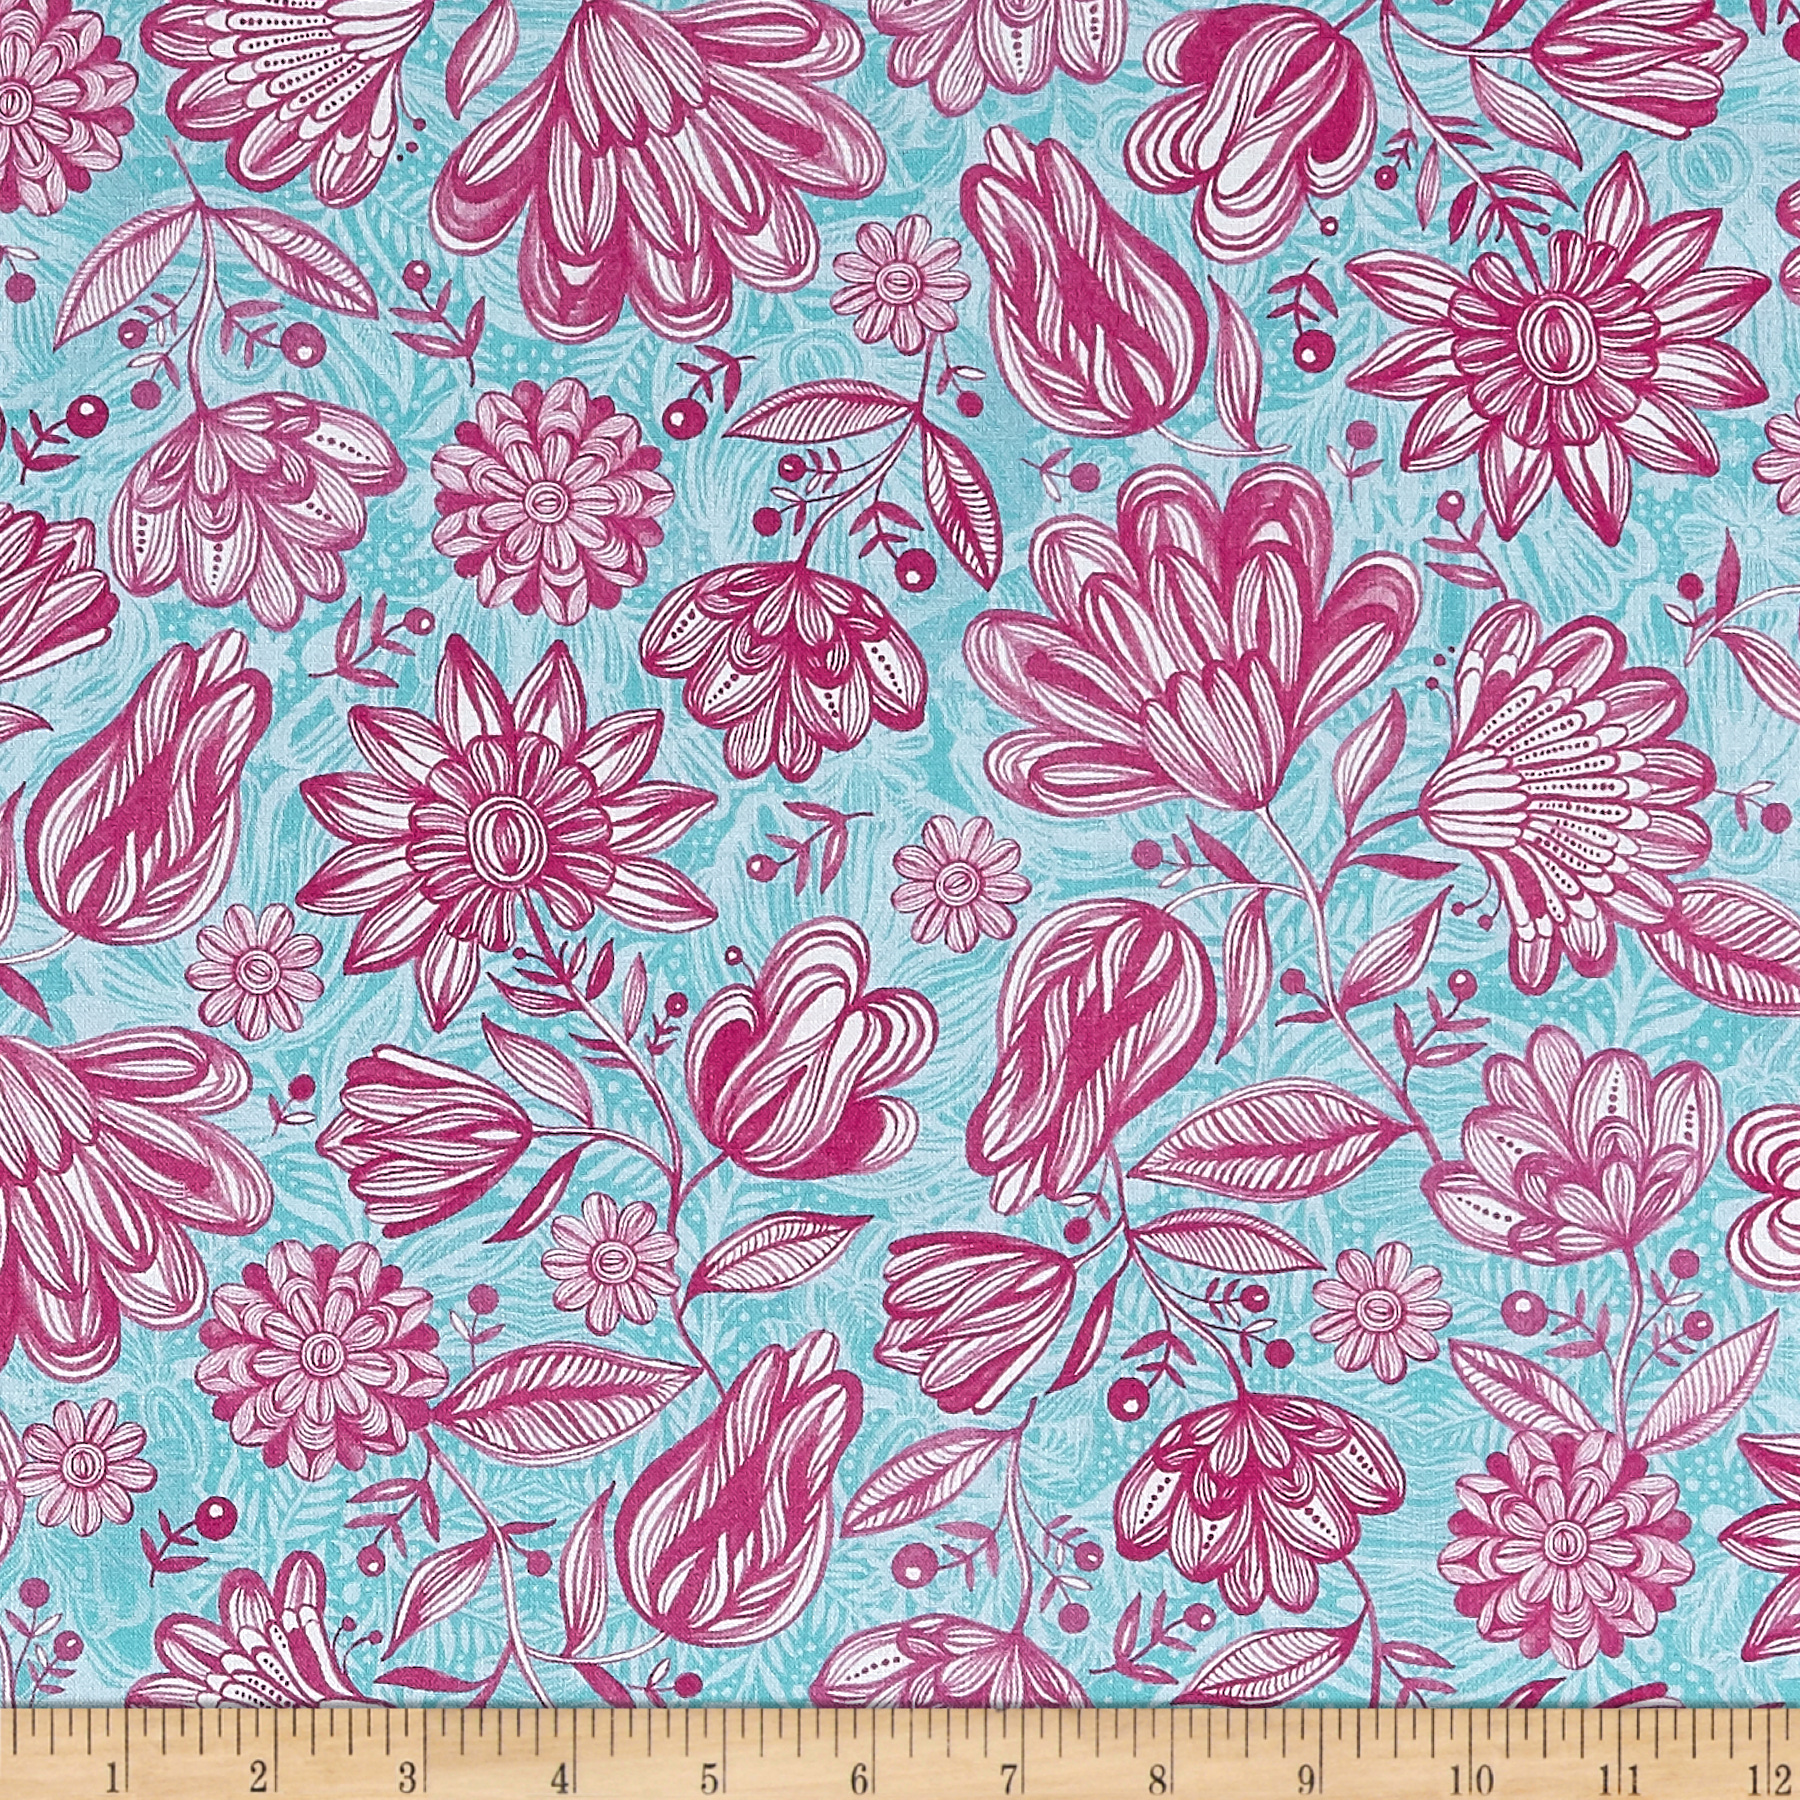 INOpets.com Anything for Pets Parents & Their Pets 3 Wishes Magic Garden Pink Garden Fabric